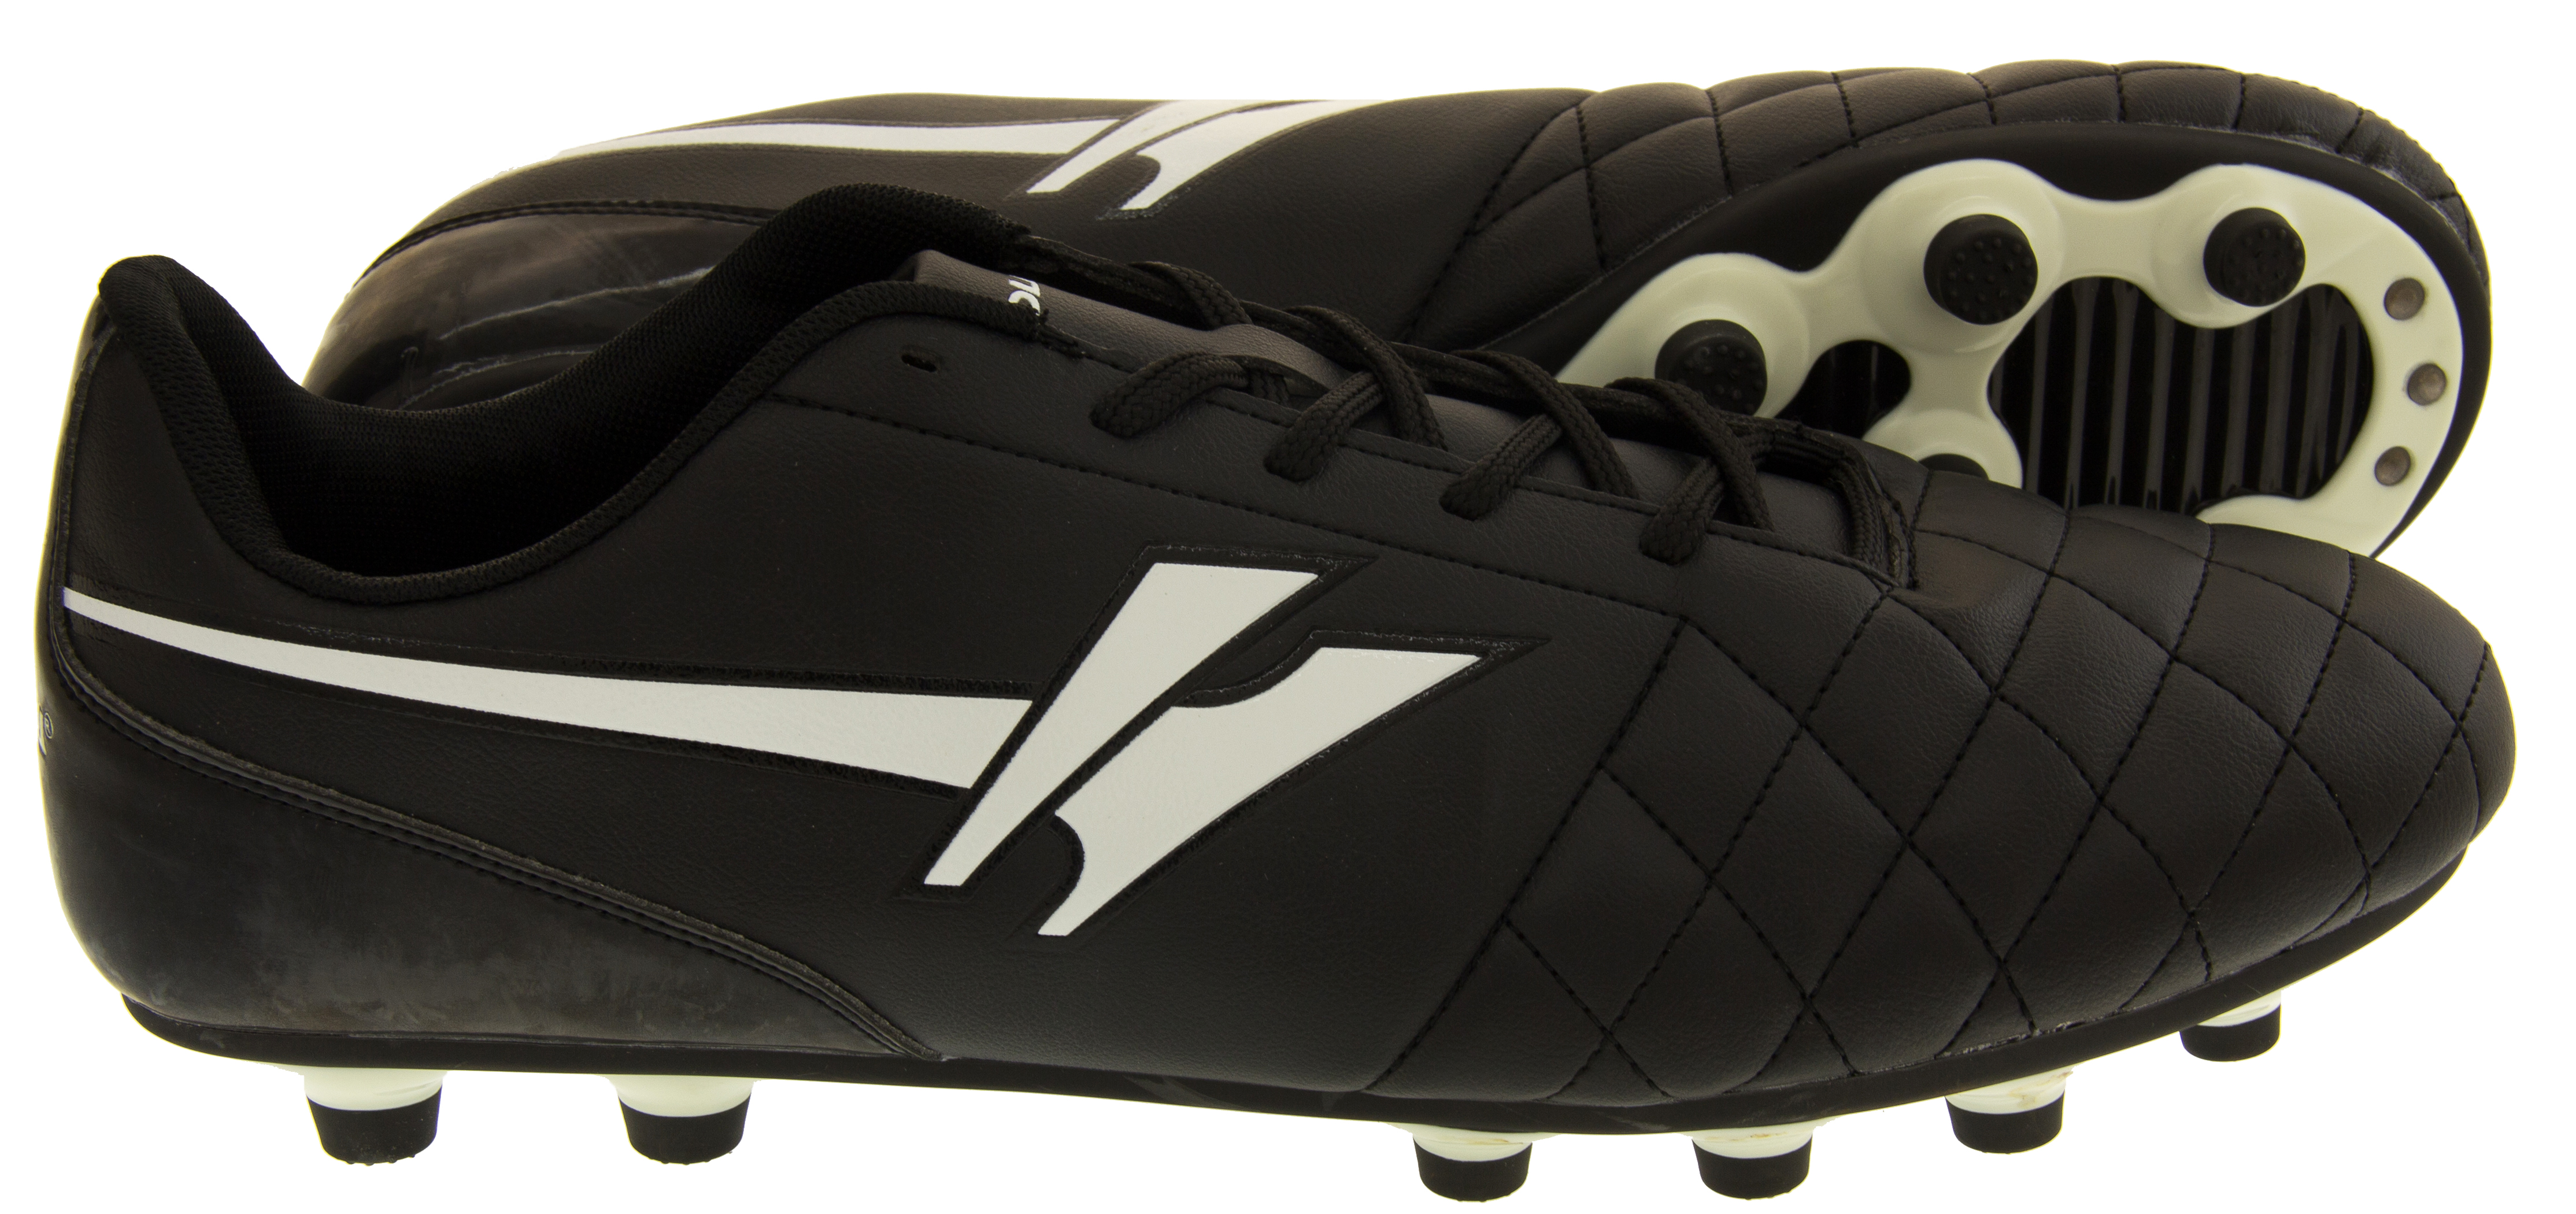 Mens Gola Rey Lace Up Football Boots Moulded Stud Trainers Soccer Boot Size  12 134c6e6d7e